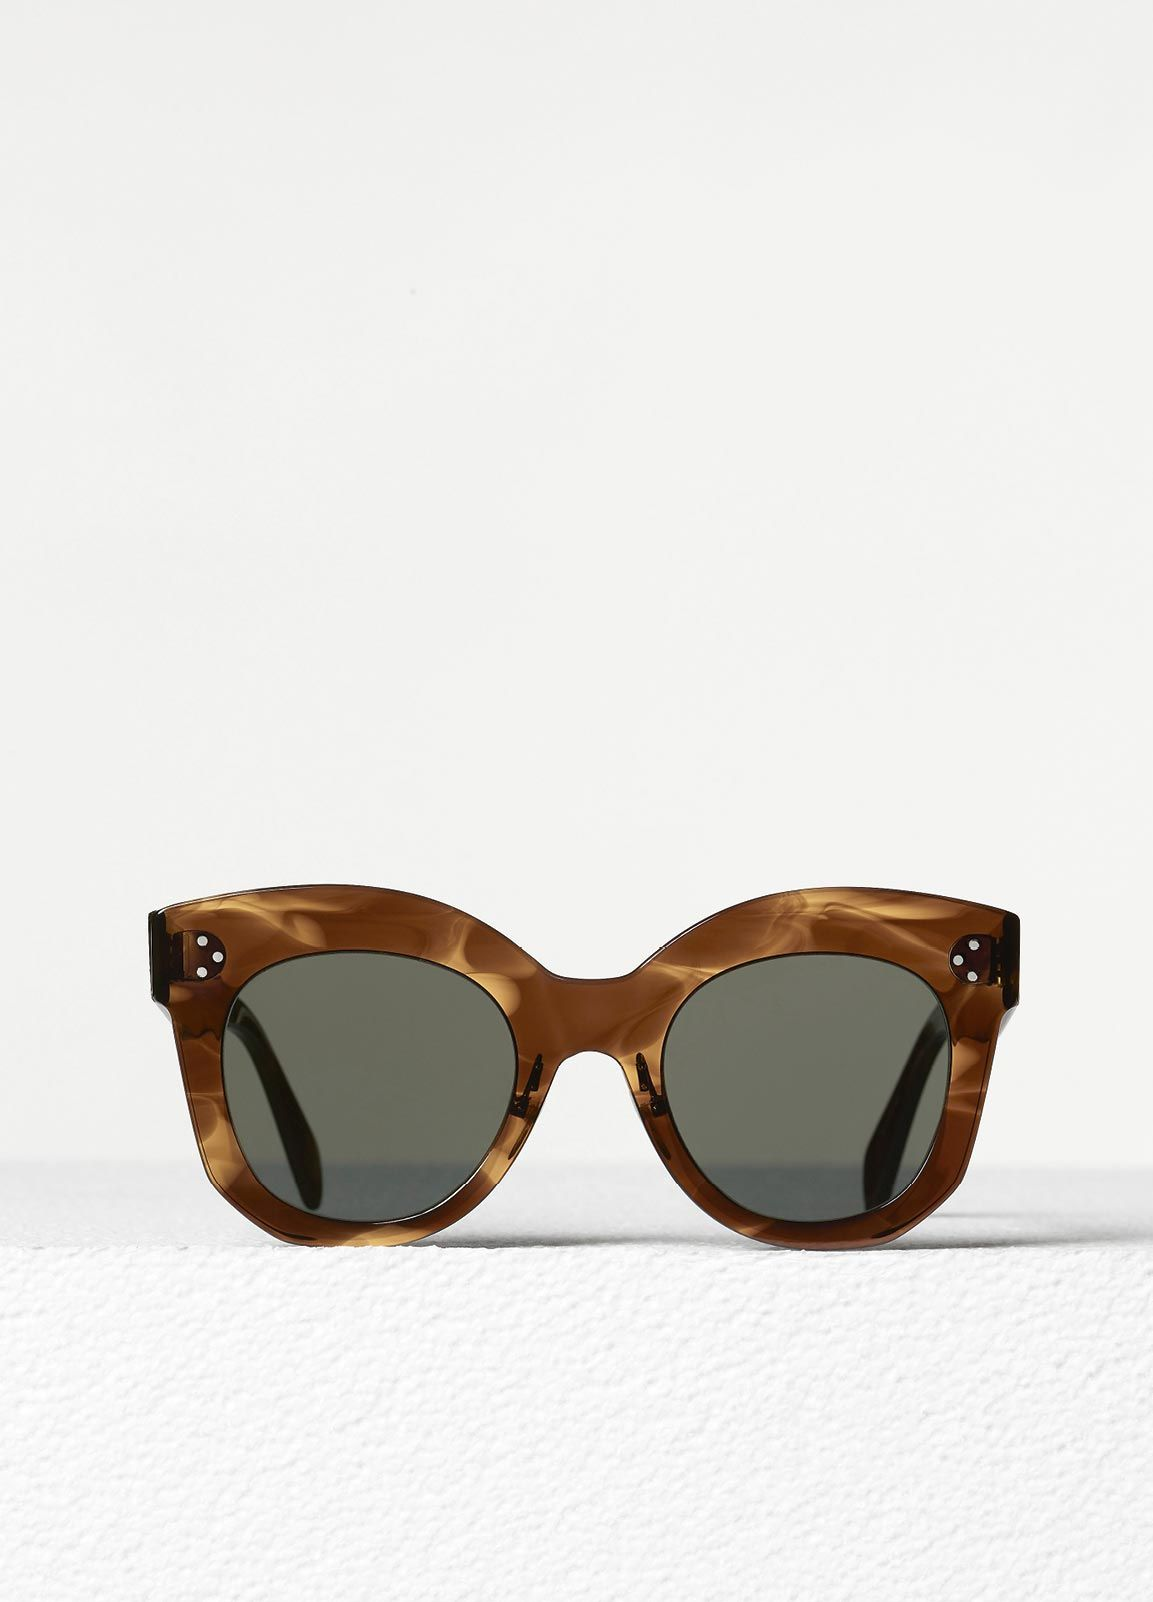 b2f2dc6f7721 Chris Sunglasses in Brown Havana Acetate with Grey Lenses Four Eyes